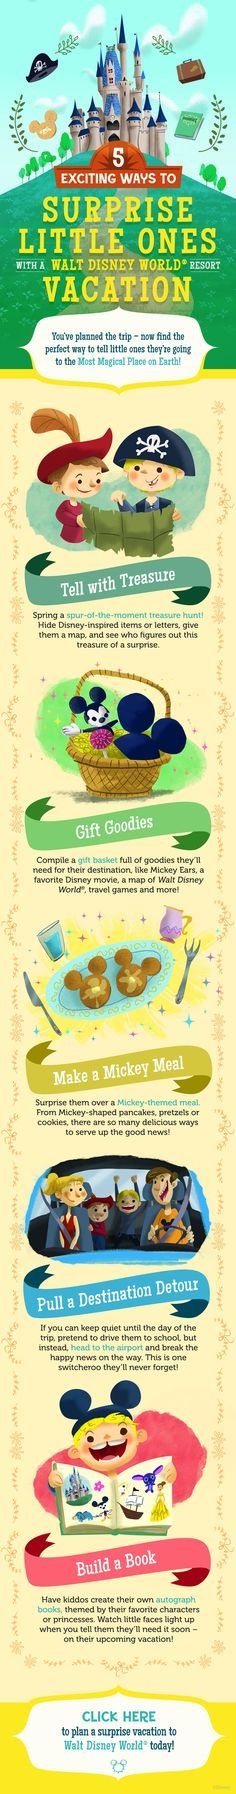 5 Ways to Surprise Little Ones with a Walt Disney World Vacation! m.pingel-hyatt@magicalvacationplanner.com